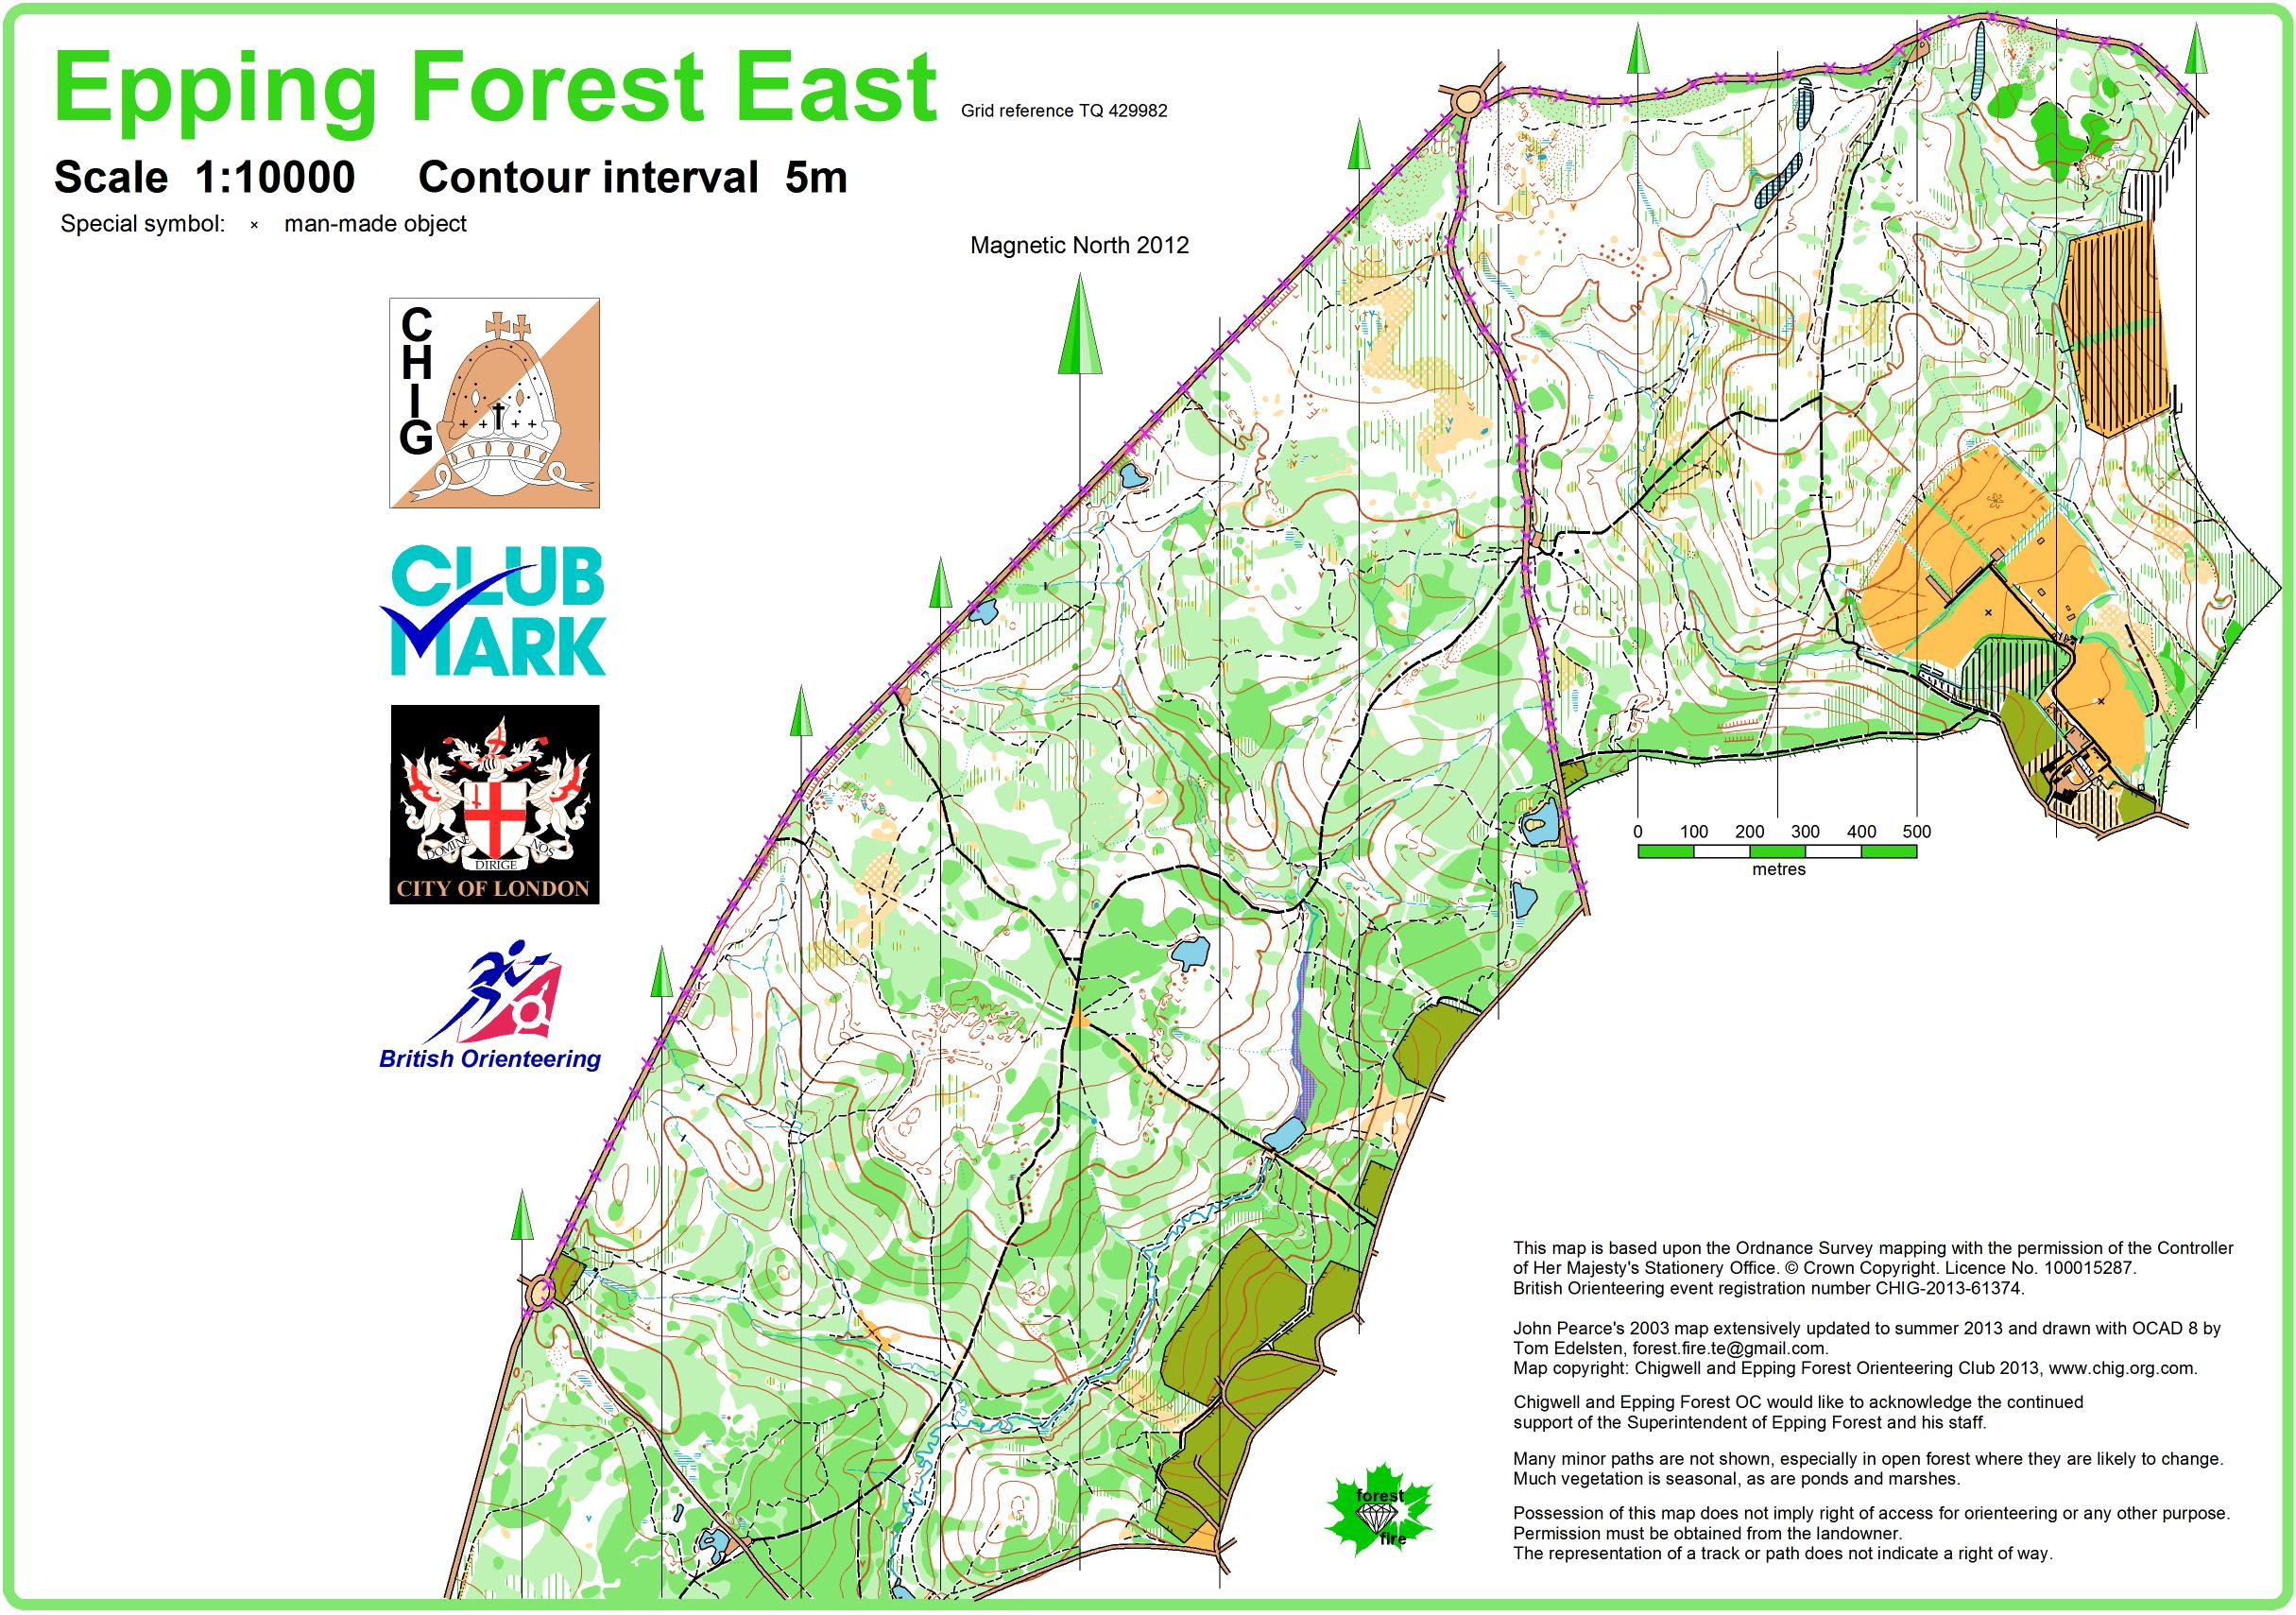 Mitre 2013 - September 29th 2013 - Orienteering Map from ... on map of regina sask, map of kingsley plantation, map of m25 motorway, map of windsor great park, map of emirates stadium, map of historic annapolis, map of city of westminster, map of west coast of scotland, map of richmond park, map of borough market, map of parliament square, map of river tweed,